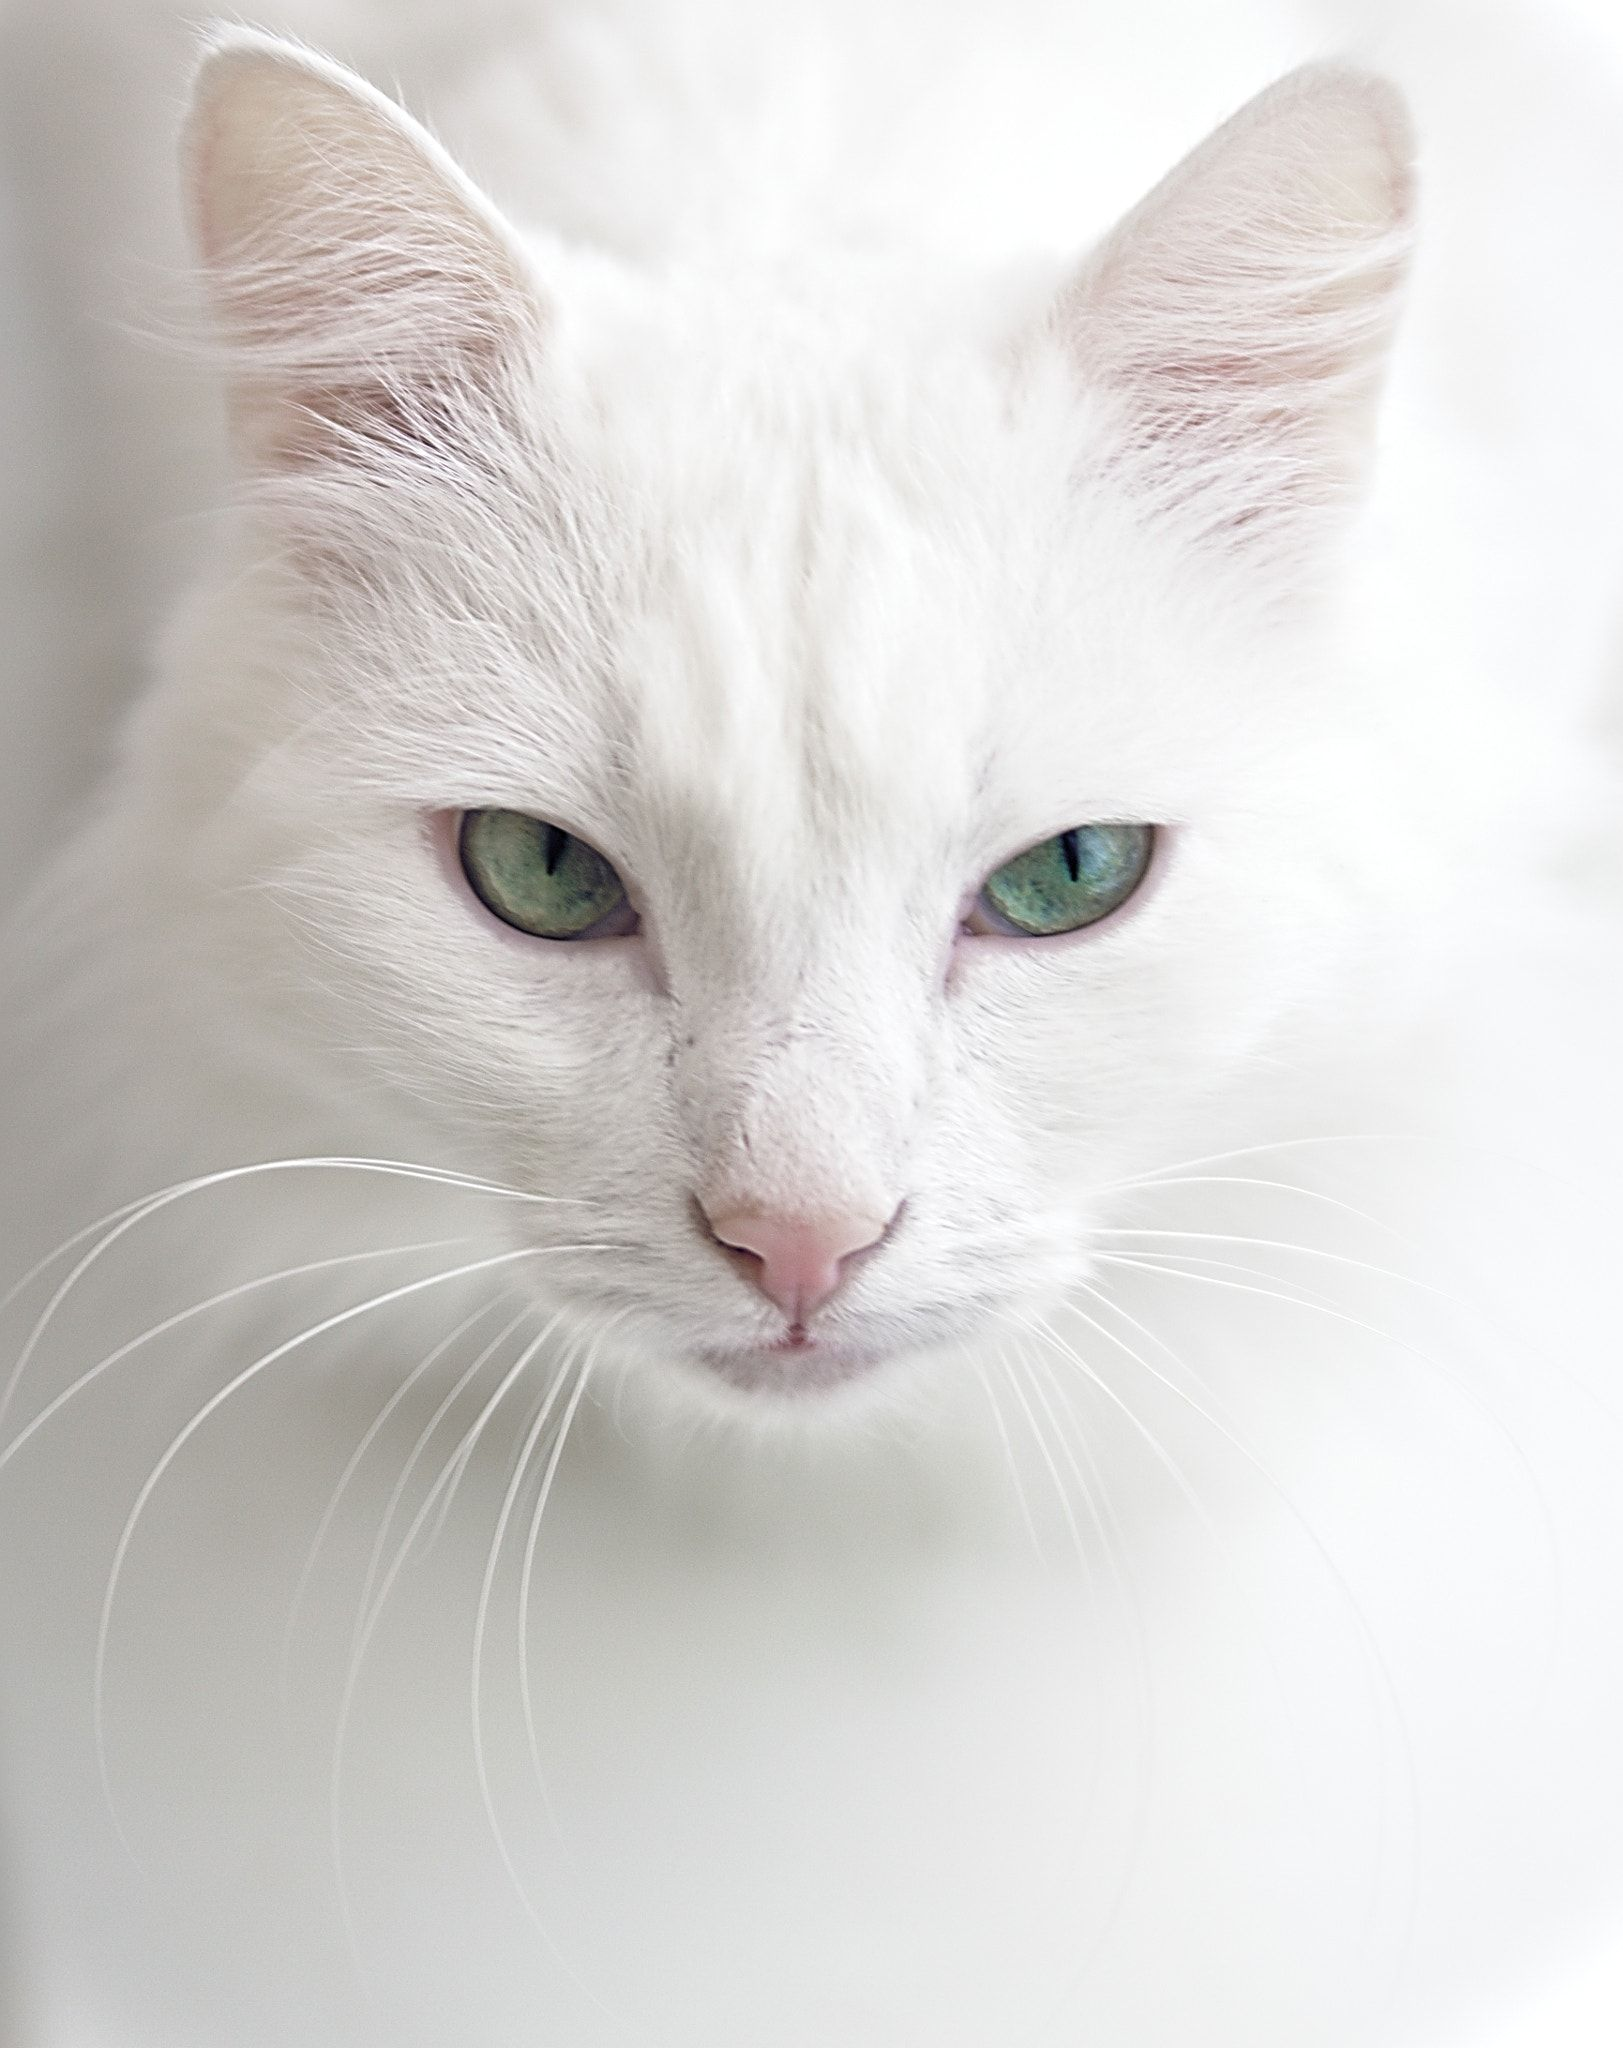 White Cat by Pavel Zilke on 500px | Whiter shade of pale ...